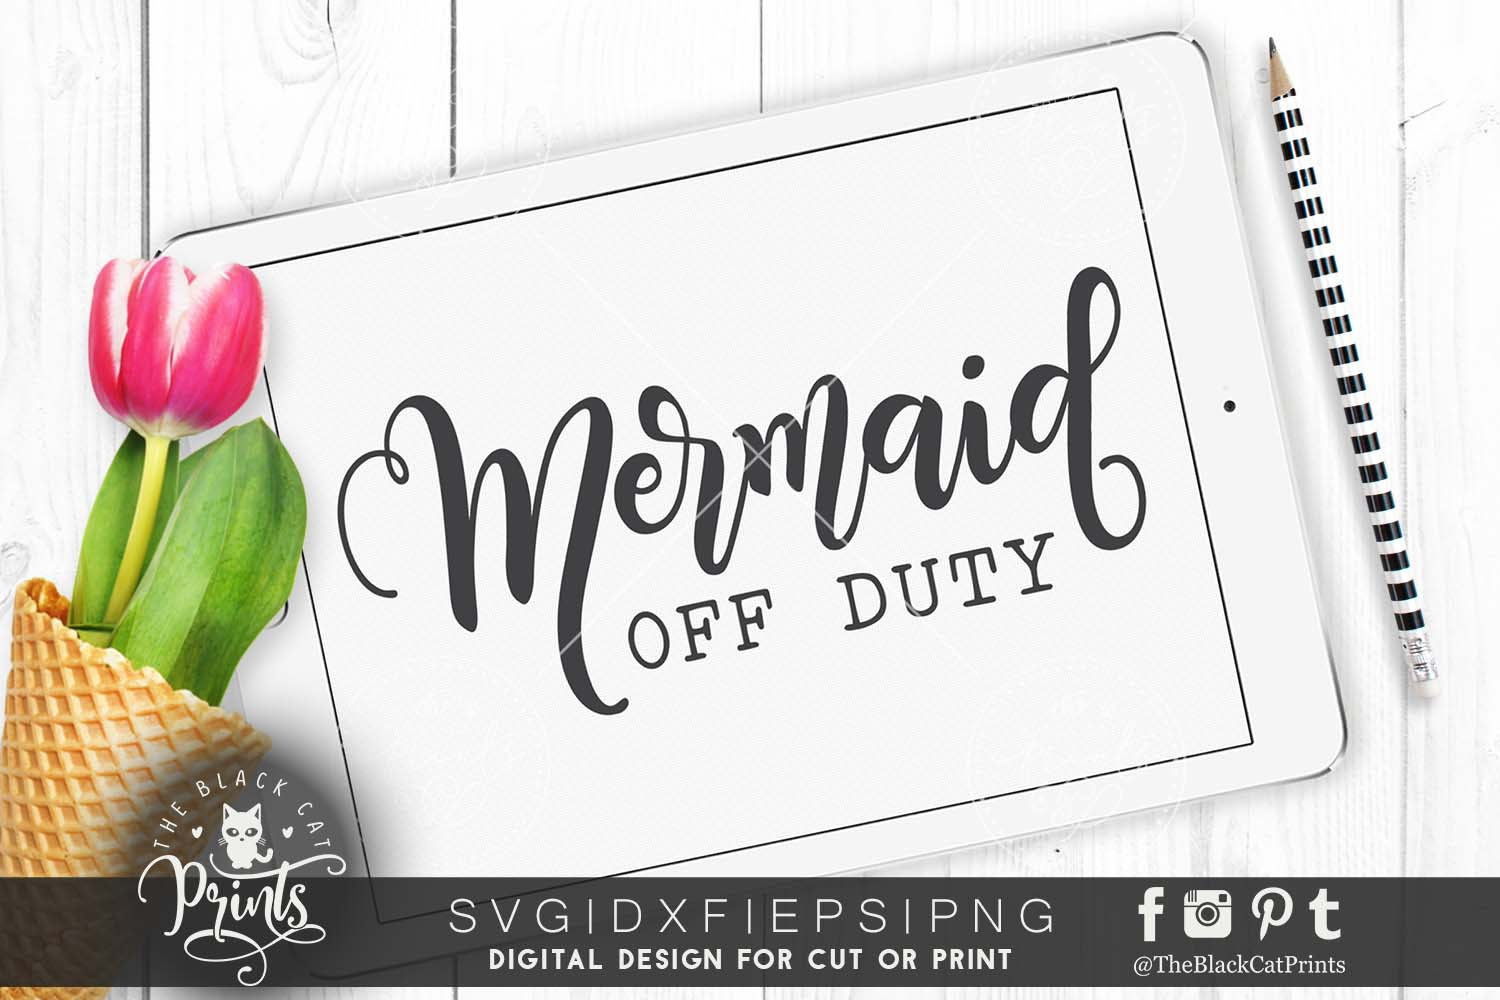 Mermaid off duty SVG DXF PNG EPS example image 1